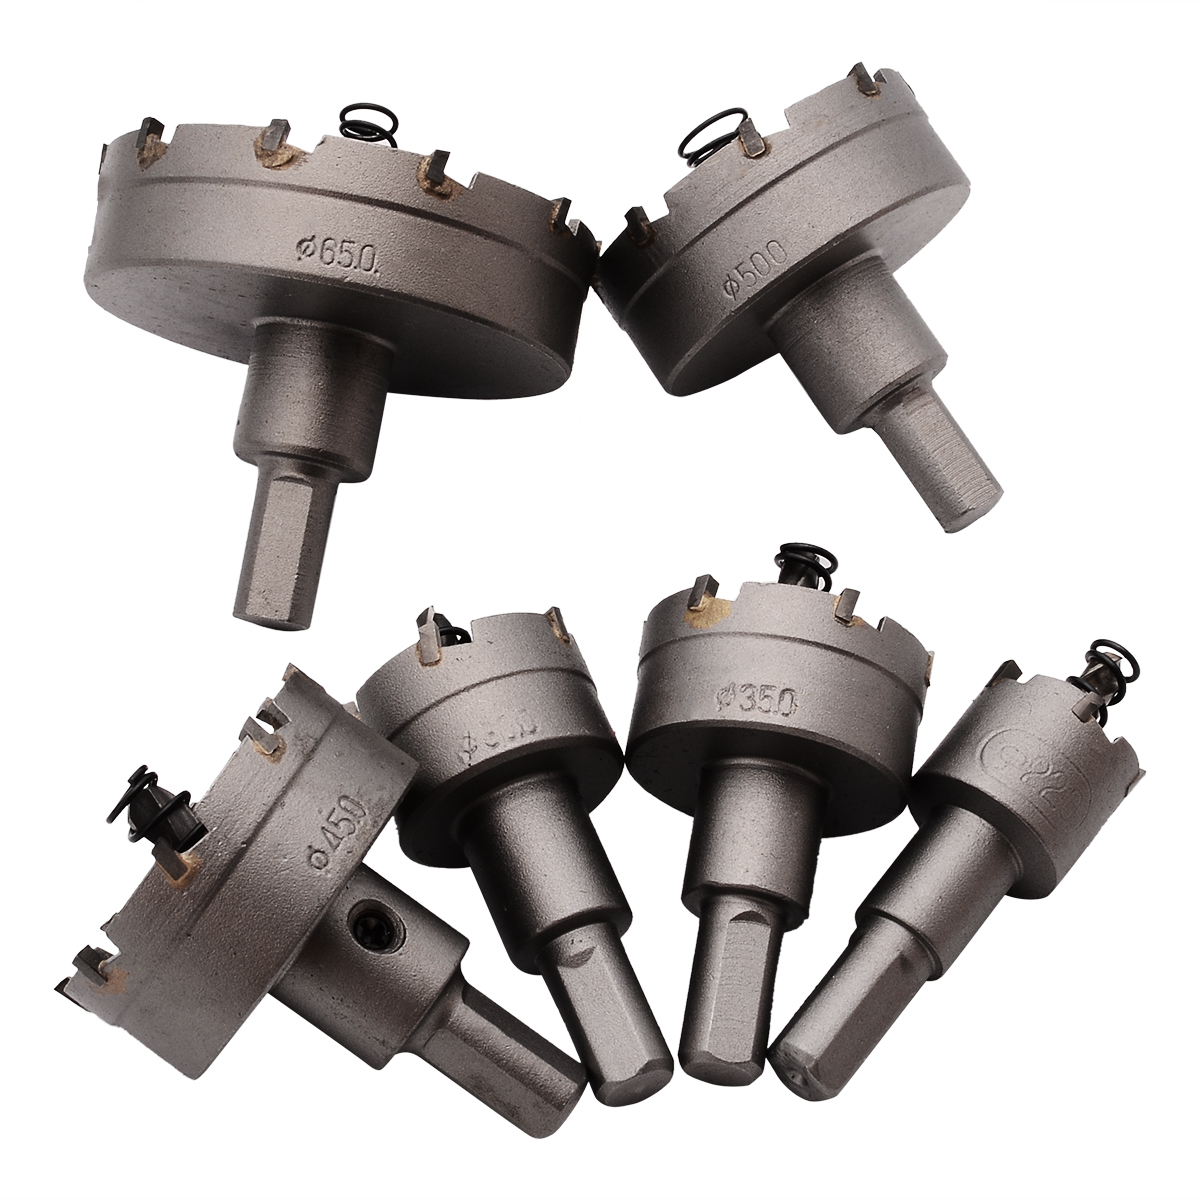 6Pcs Carbide Tip Stainless Steel TCT Drill Bit Set Hole Saw Cutter Alloy Tool For Thick Steel Plates Cast Iron Stainless Steel